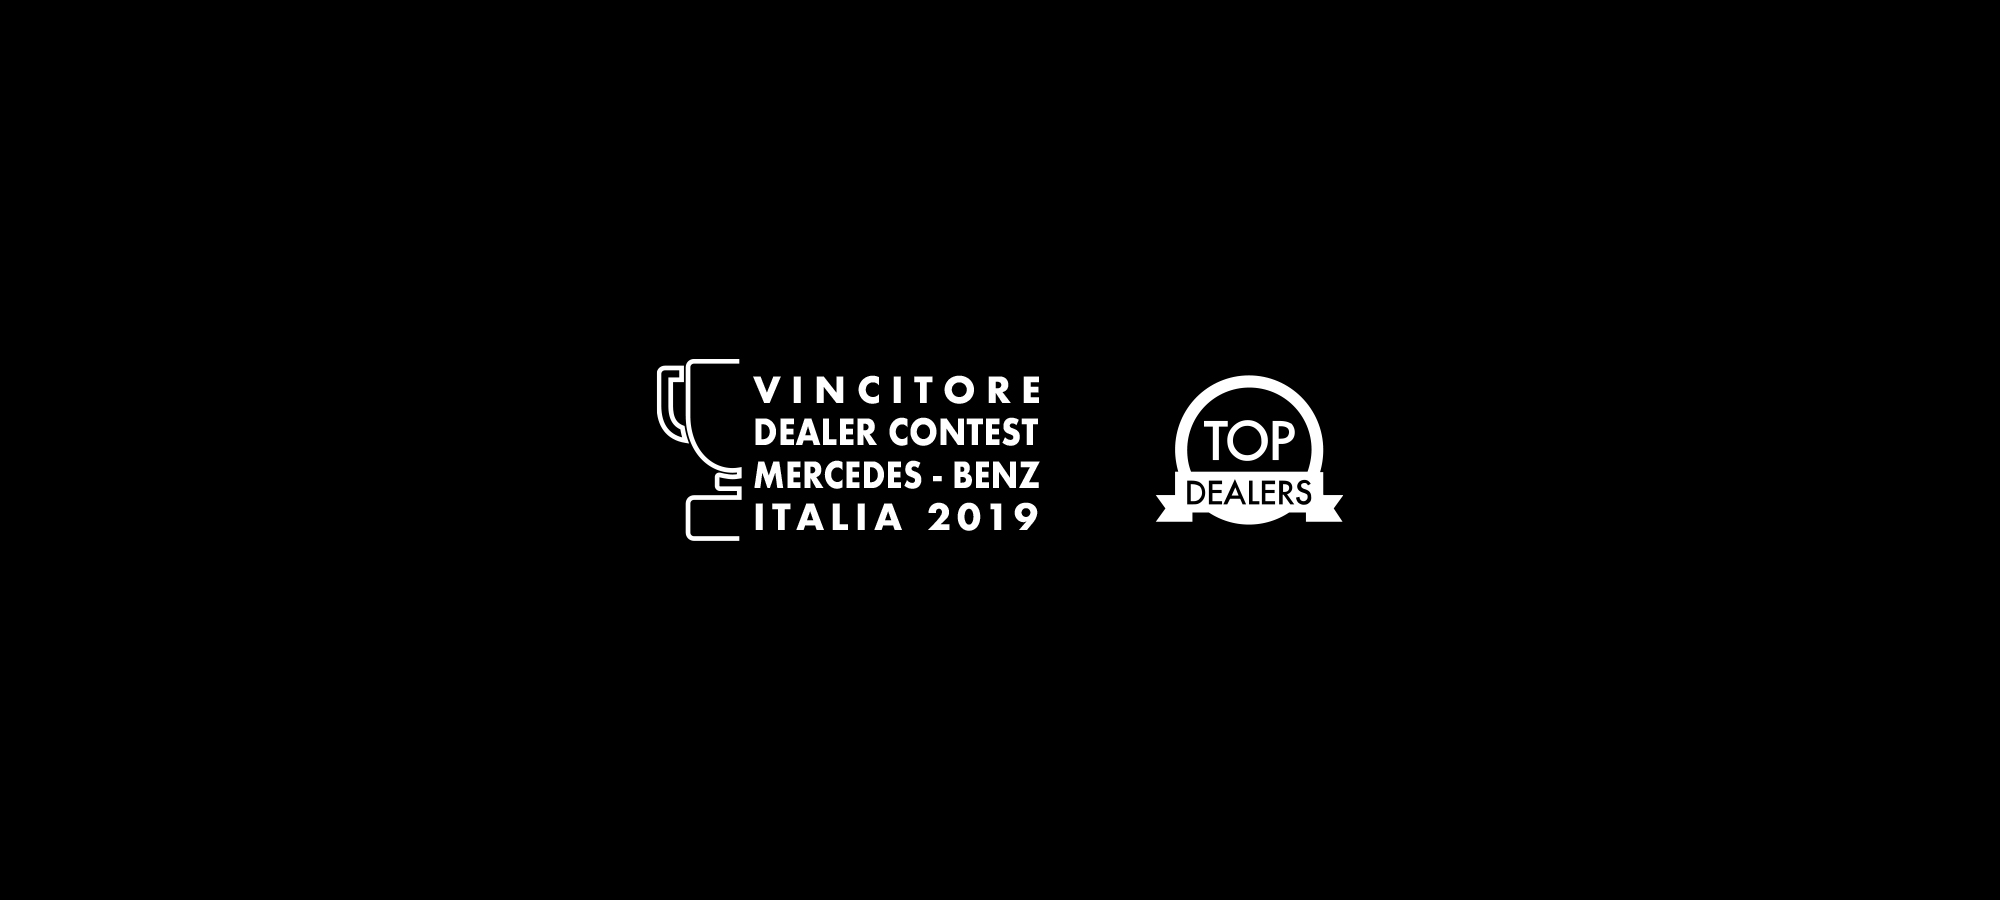 Vincitore Dealer Contest